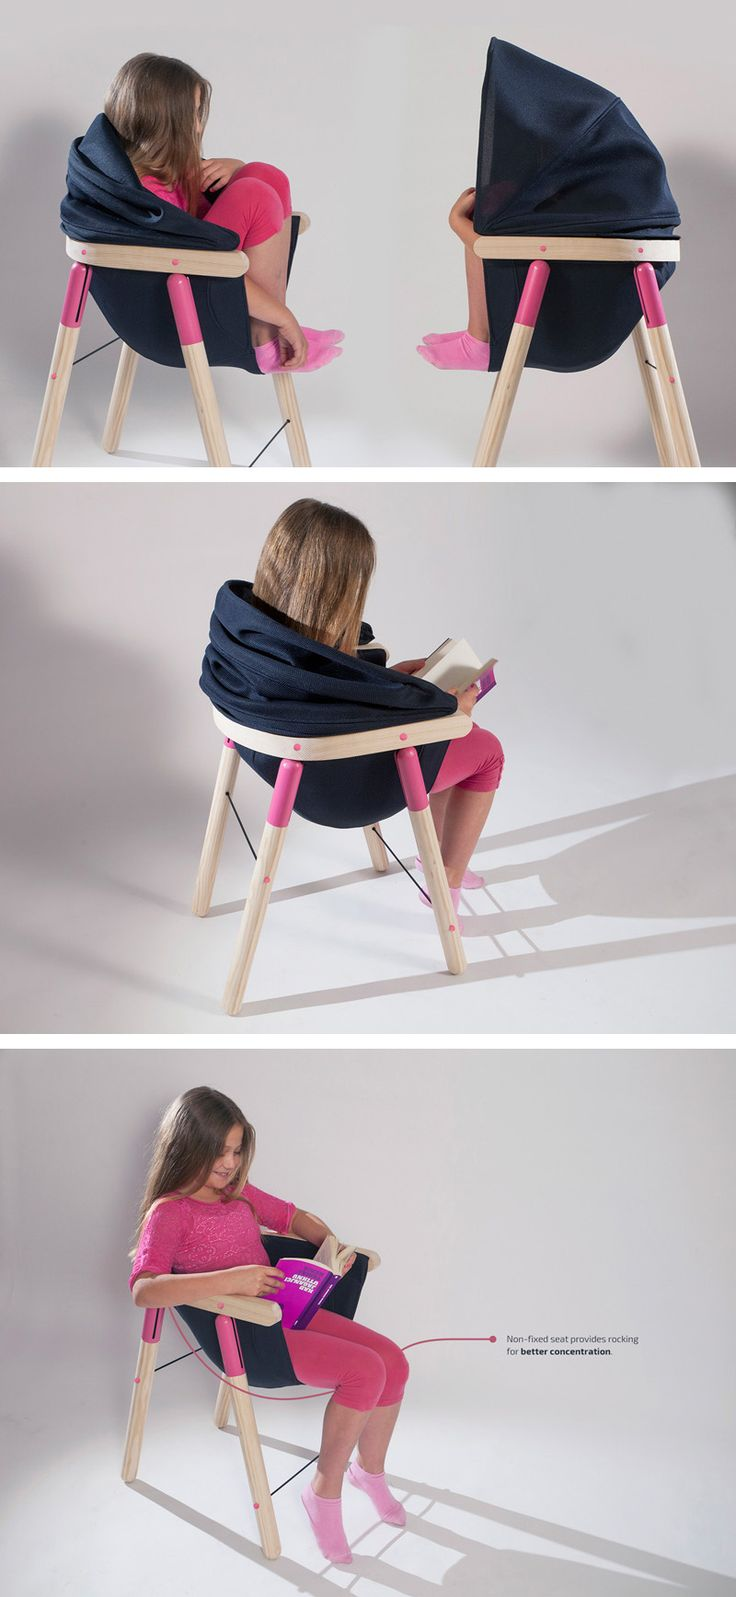 Croatian designer Dorja Benussi has created the Soothing Chair, as part of her Sensorimotor Educational Equipment project.